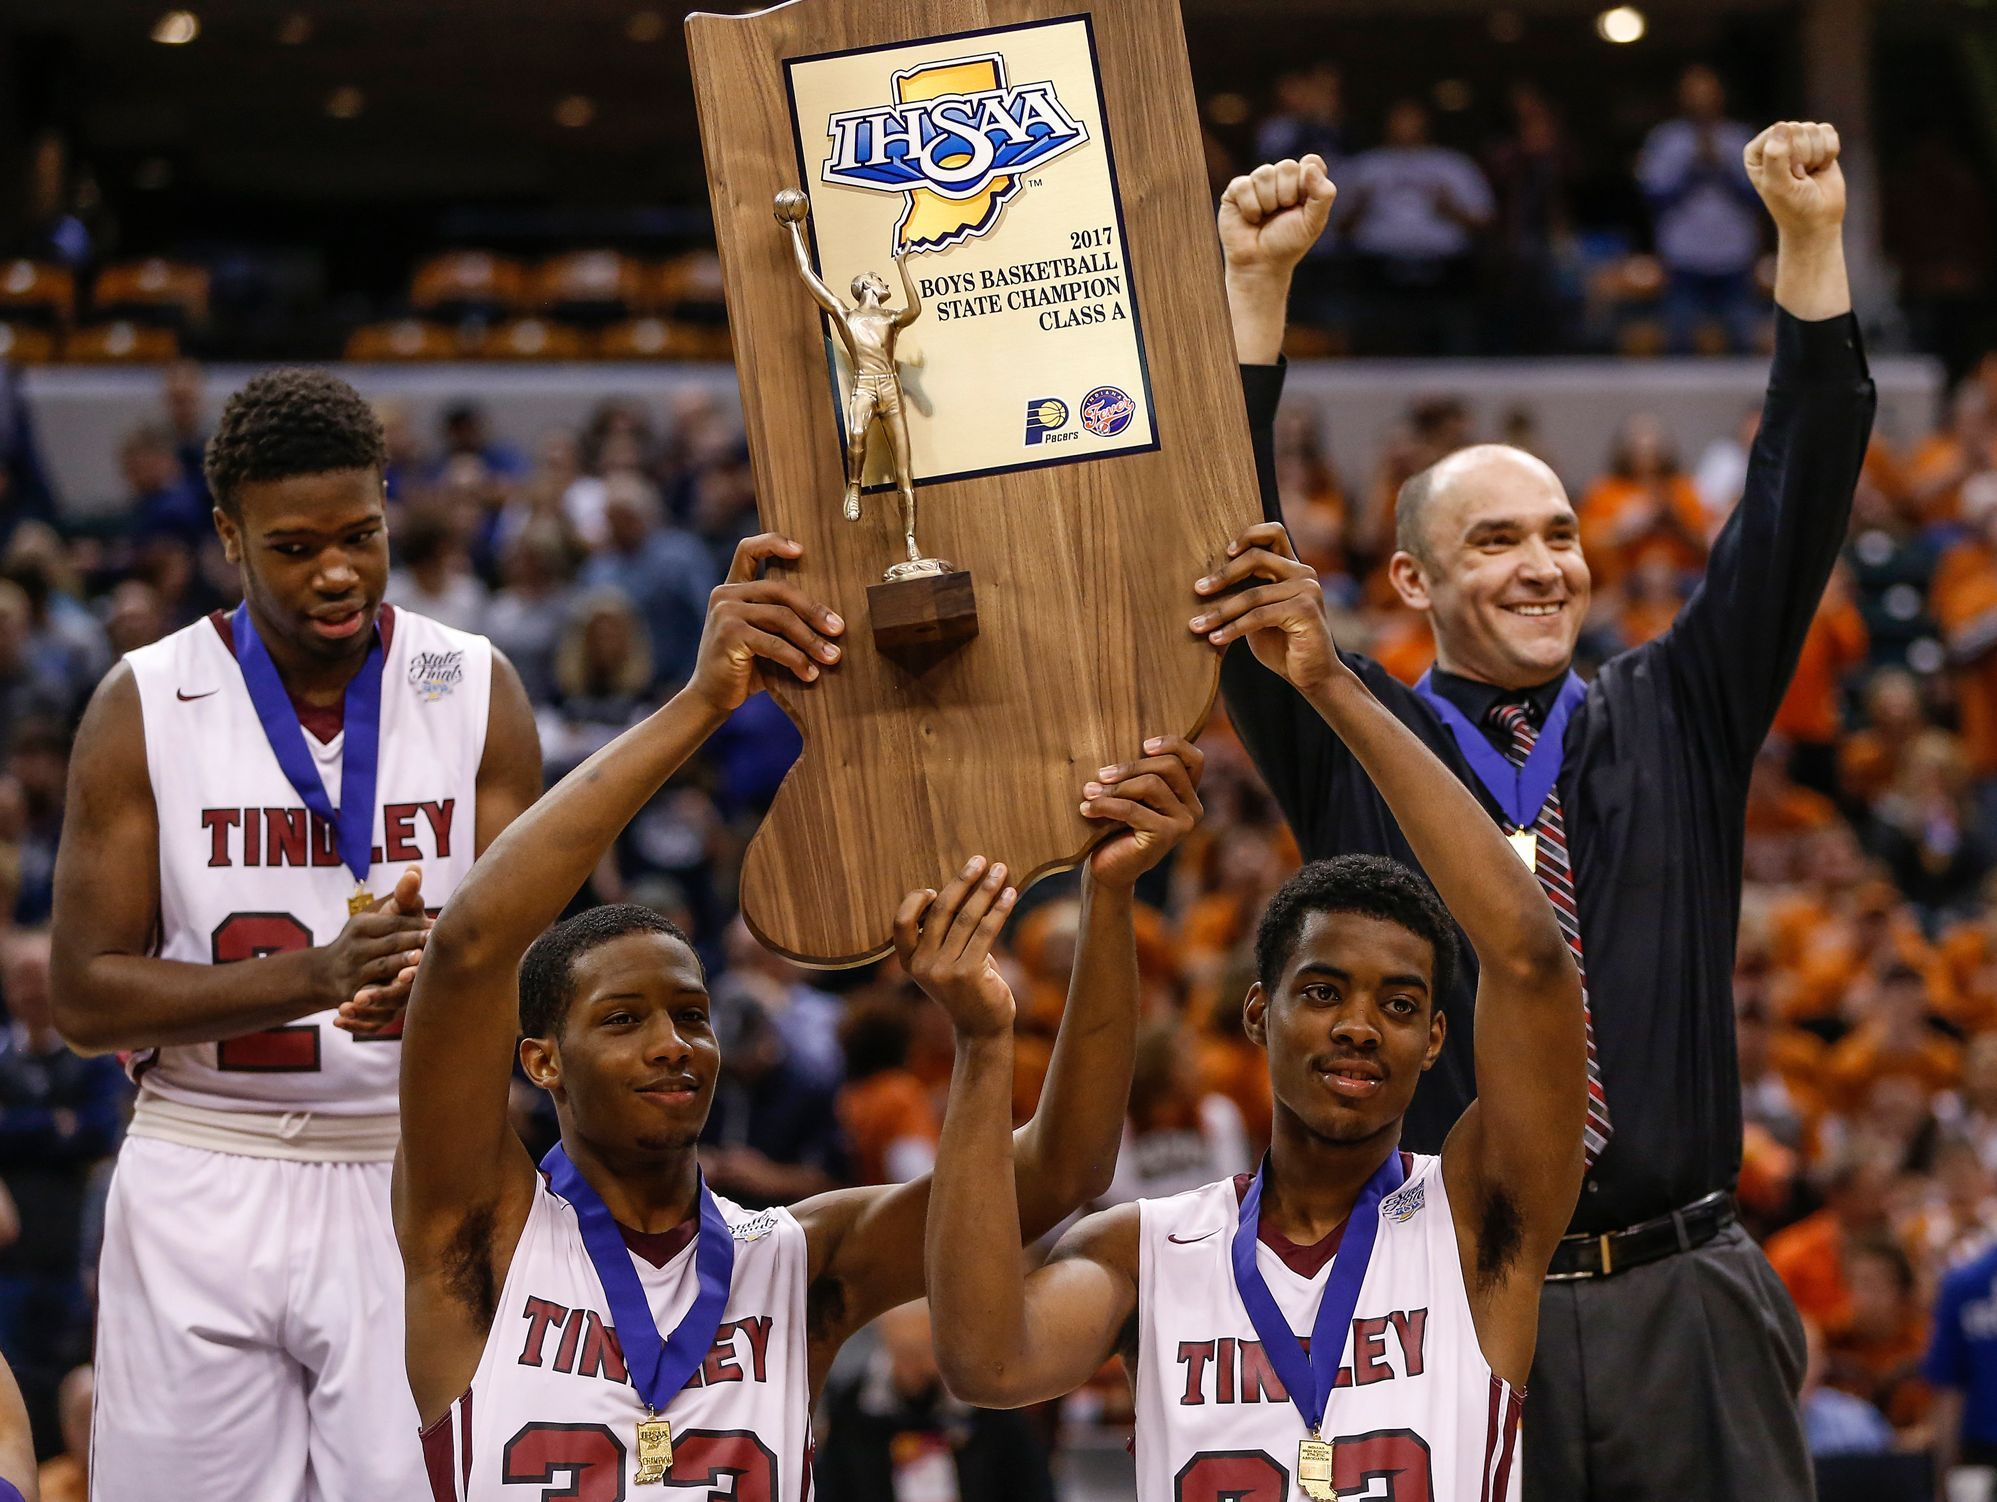 The Tindley Tigers hoist the IHSAA Class A state championship trophy after their 51-49 win over the Lafayette Central Catholic Knights at Bankers Life Fieldhouse in Indianapolis on Saturday, March 25, 2017.